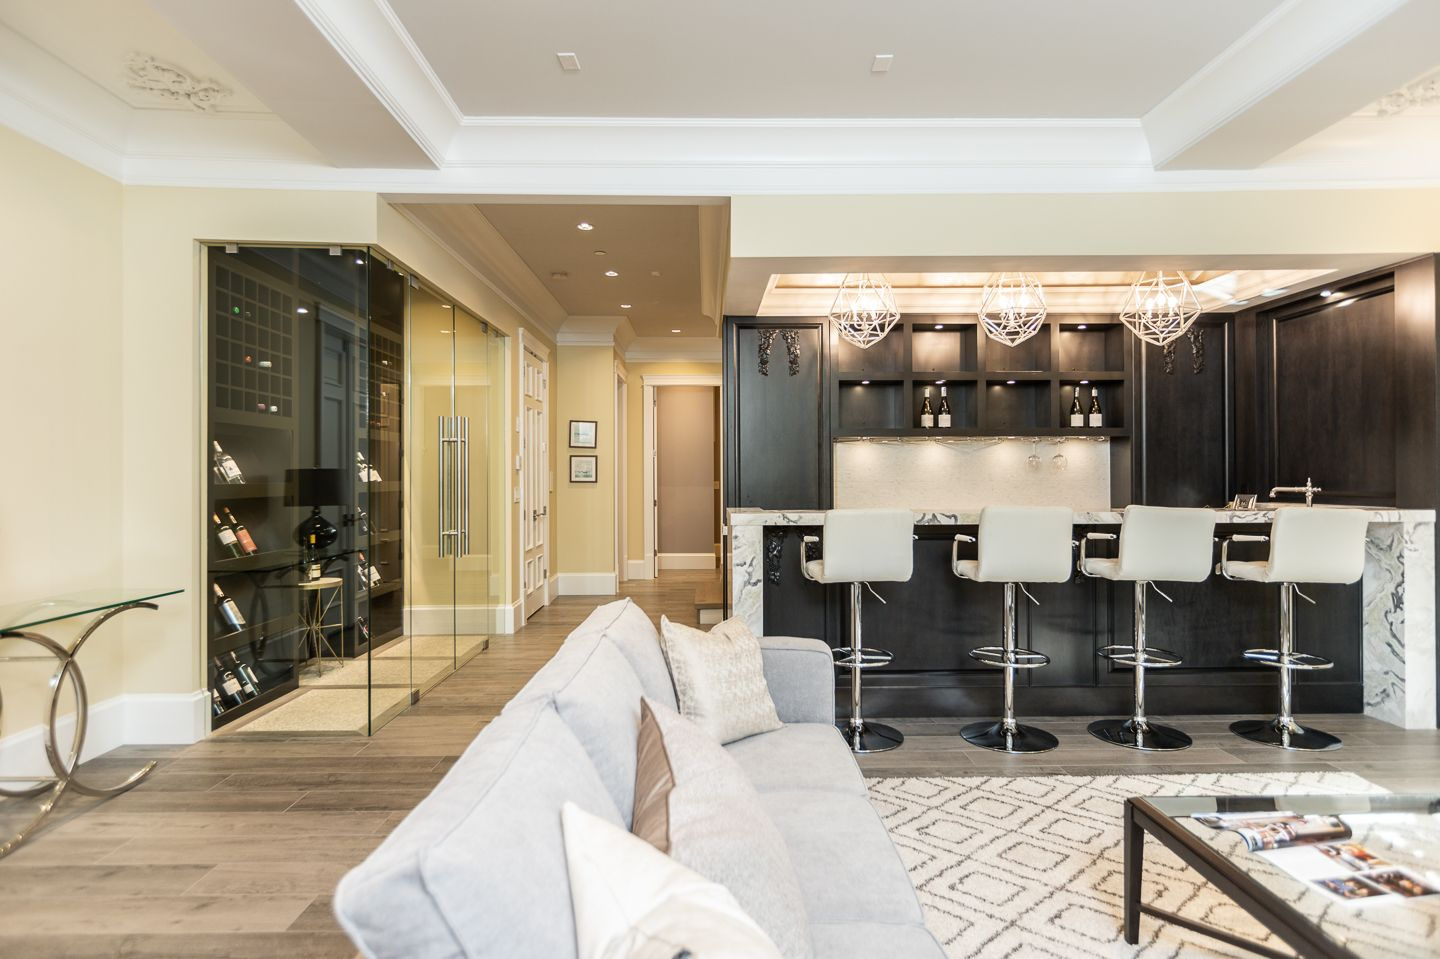 Photo 32: Photos: 1744 WEST 61ST AVE in VANCOUVER: South Granville House for sale (Vancouver West)  : MLS®# R2546980